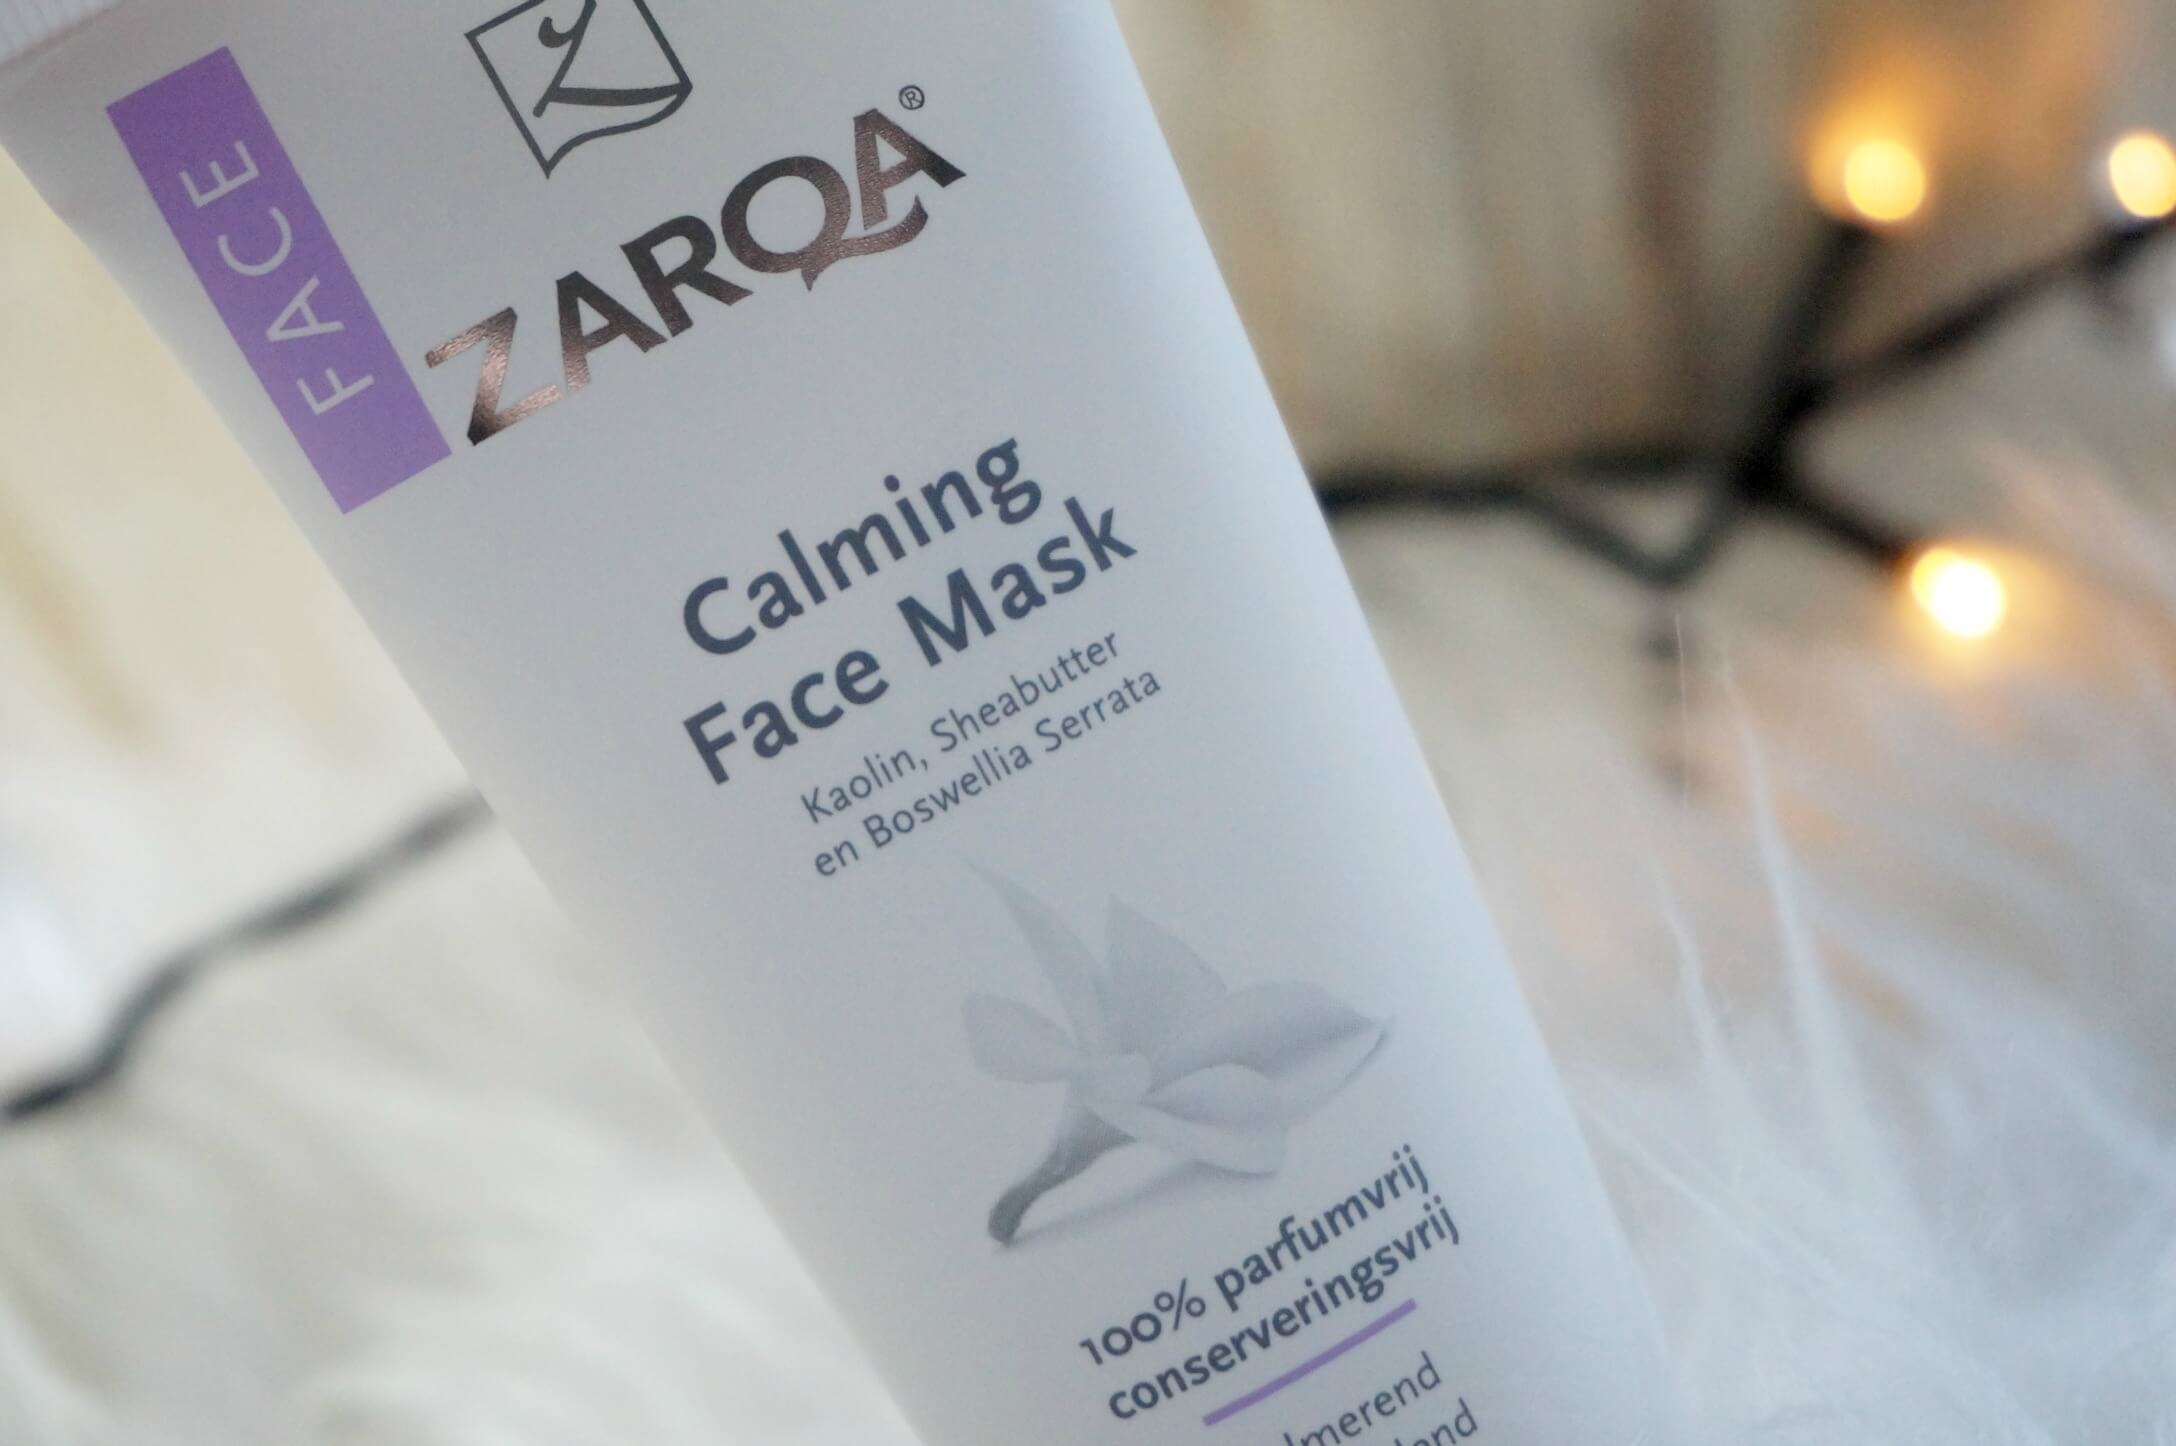 Calming Face Mask